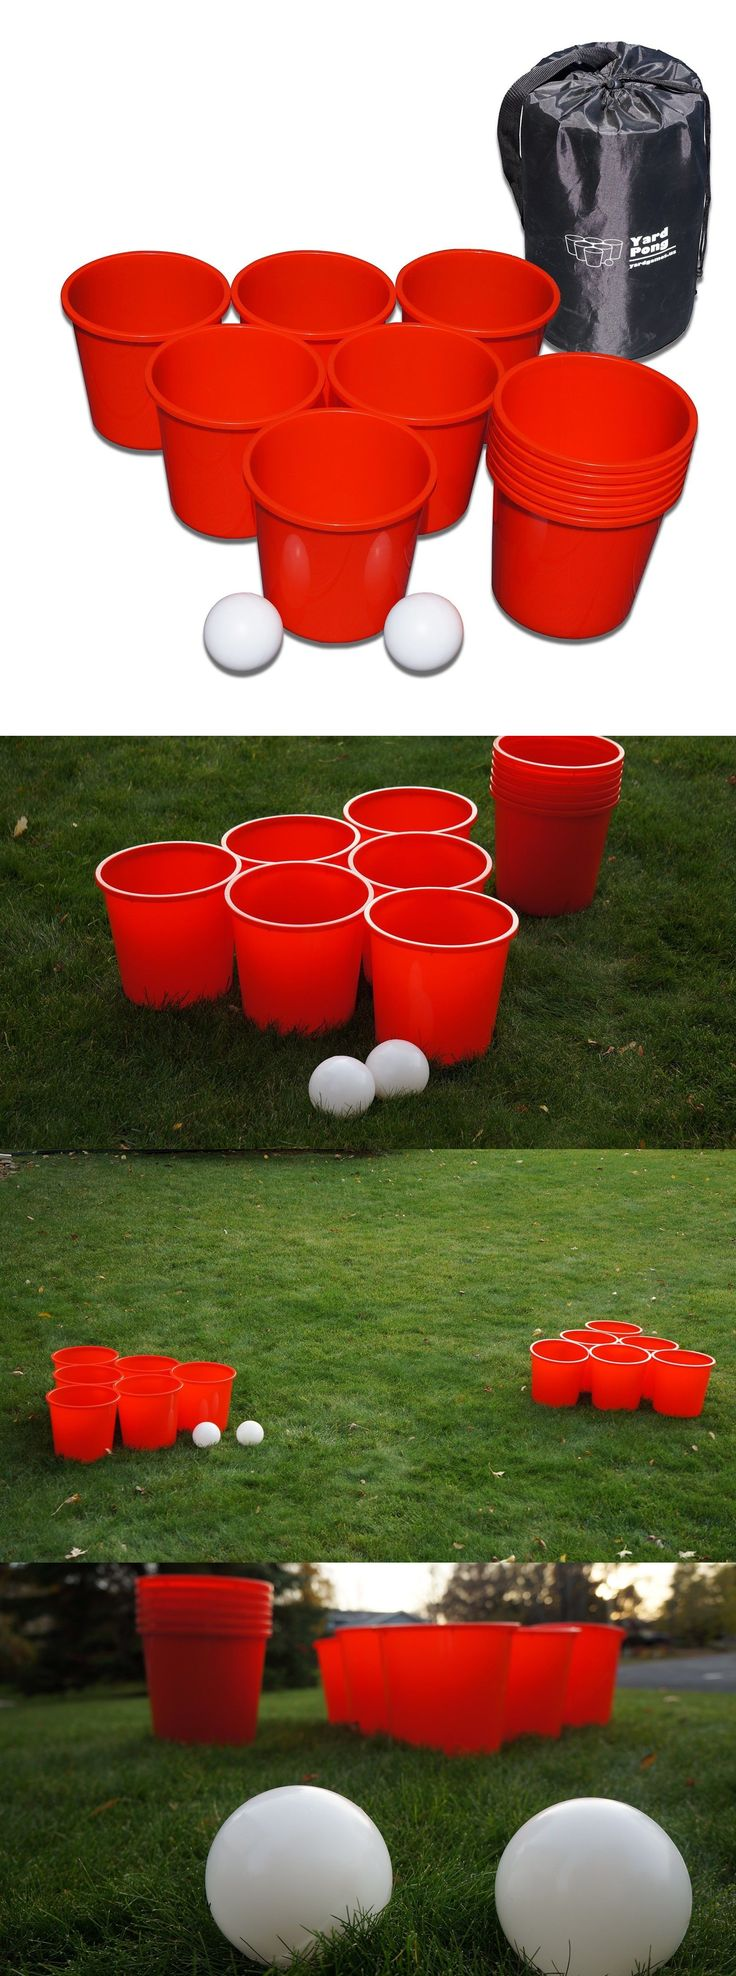 Other Backyard Games 159081: New Giant Yard Beer Pong Cup Ball Set Adult Outdoor Ball Games Party Accessories -> BUY IT NOW ONLY: $63.57 on eBay!